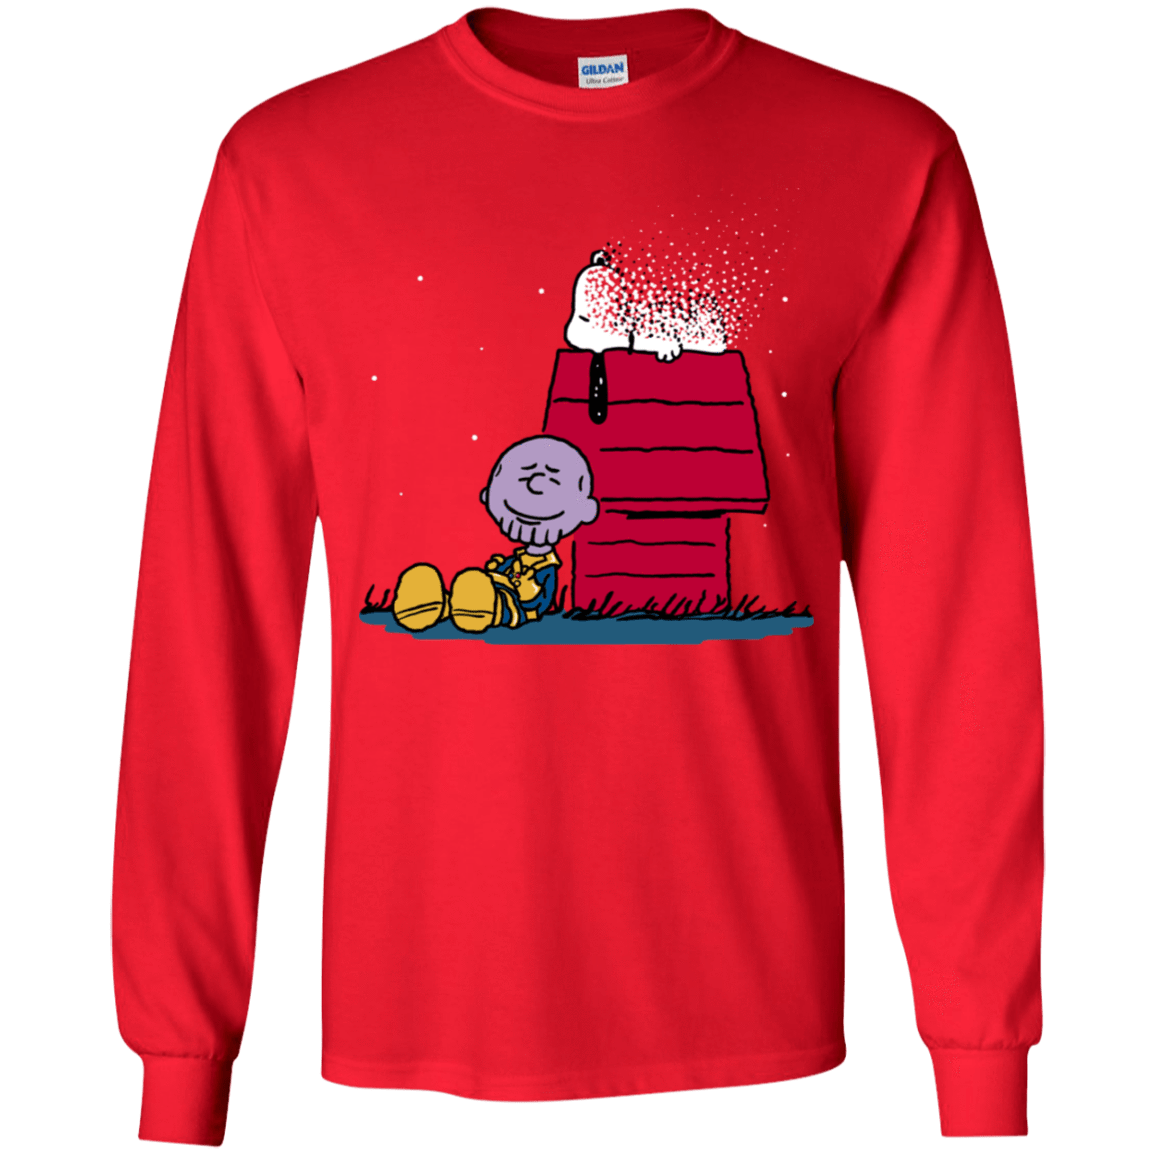 T-Shirts Red / YS Snapy Youth Long Sleeve T-Shirt